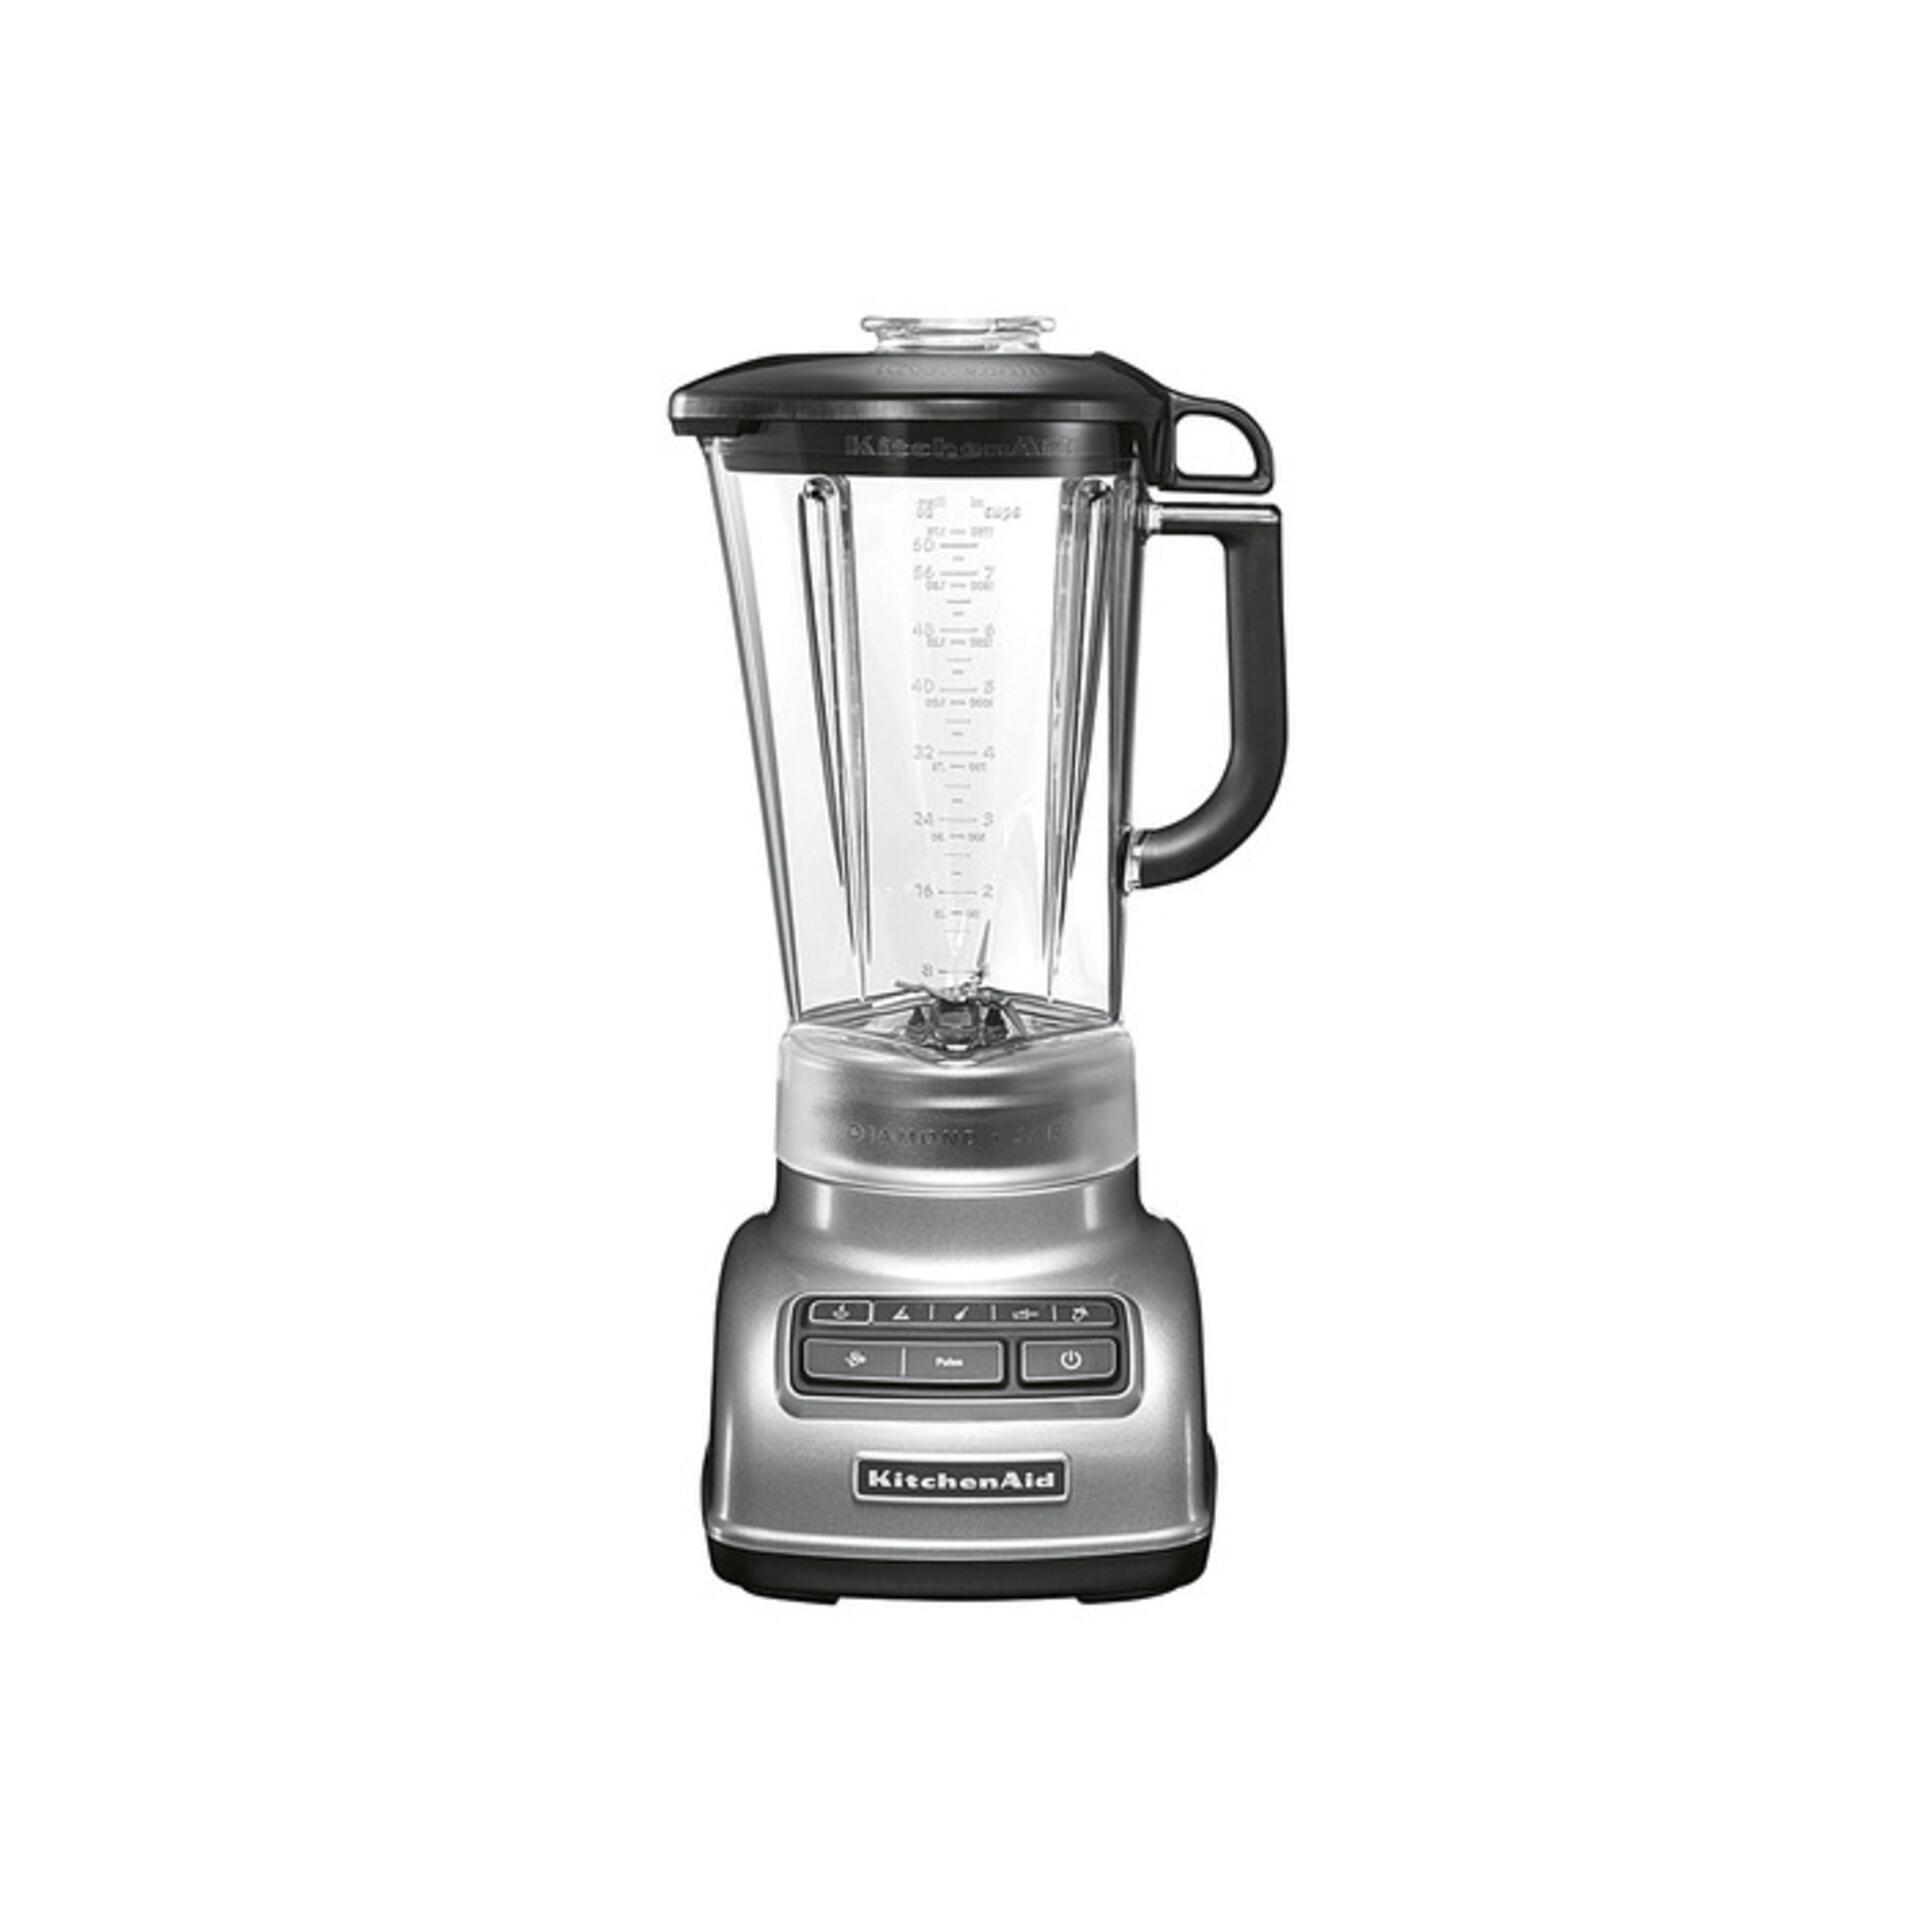 Kitchenaid Blender im Rautendesign Classic Silber 5KSB1585ECU